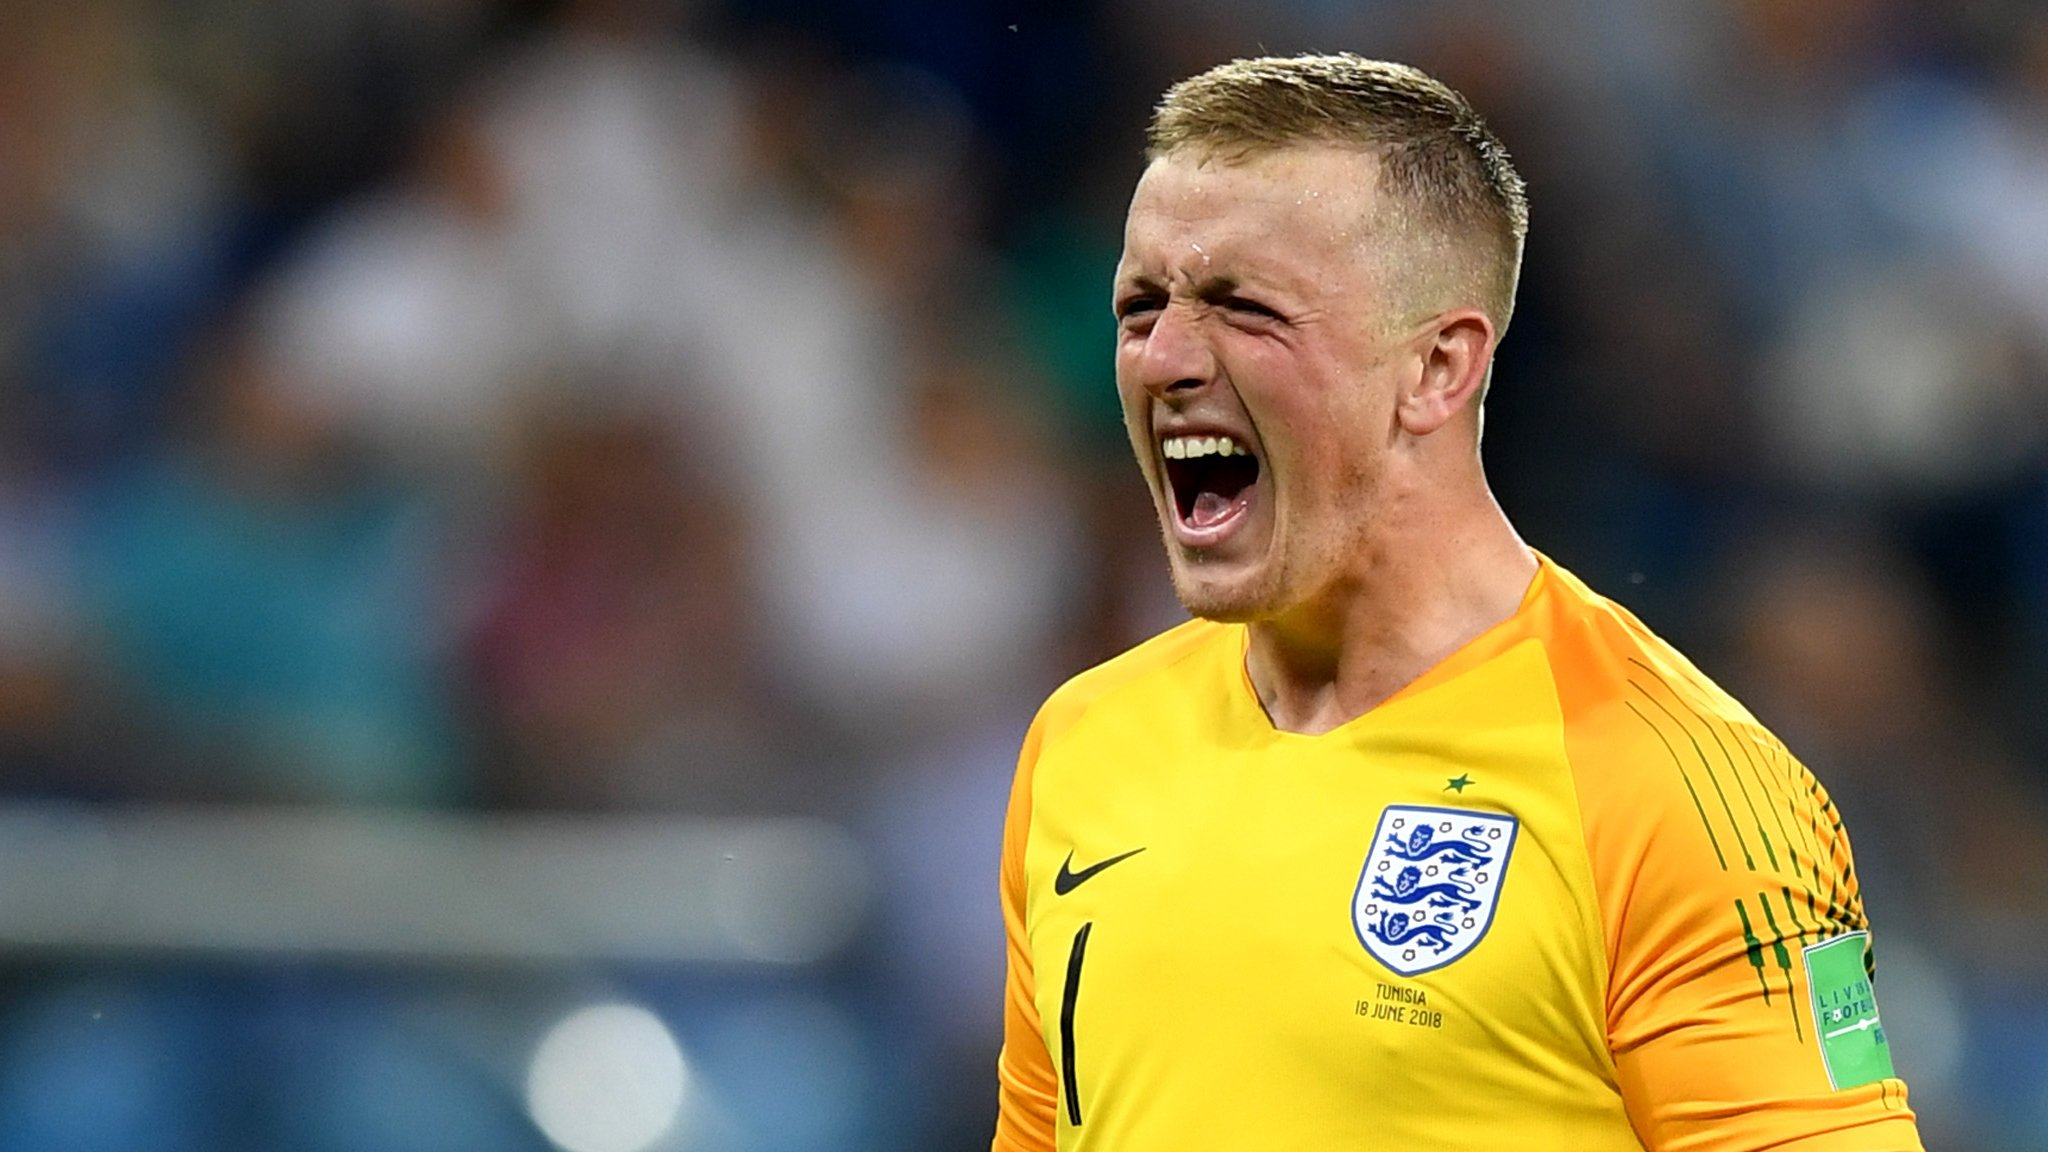 Who was a threat to his own team? England players rated v Tunisia